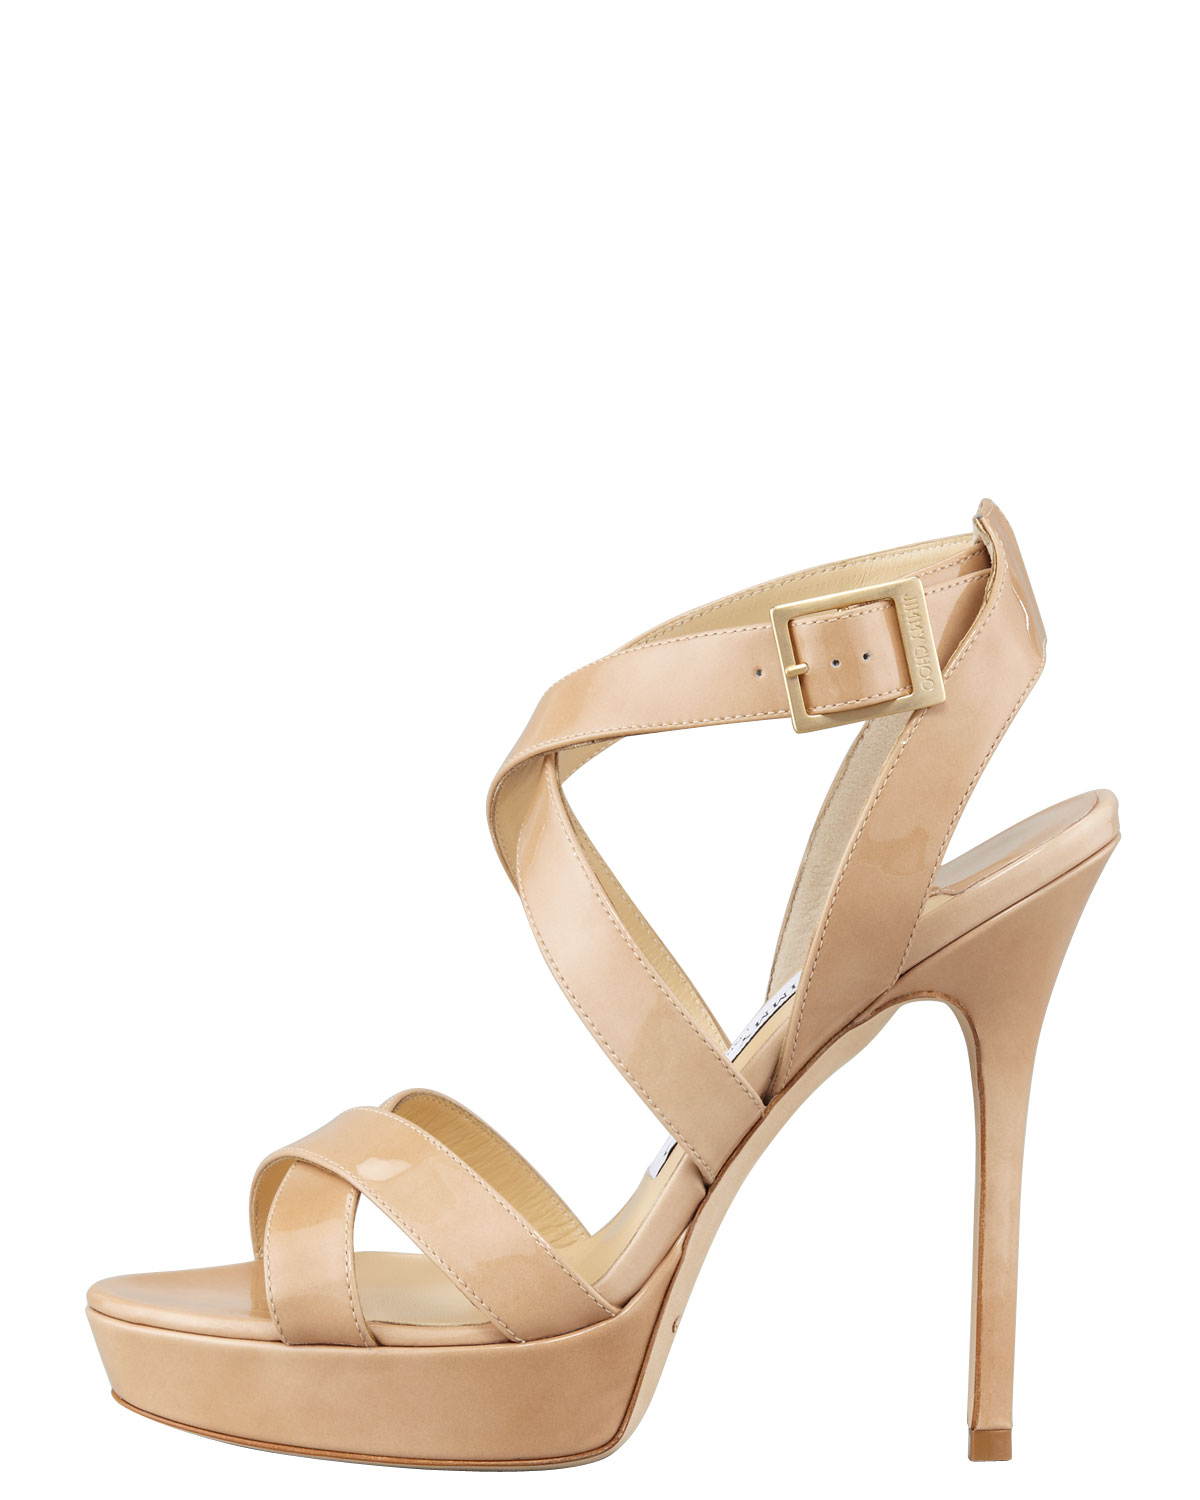 Lyst - Jimmy choo Vamp Crisscross Platform Sandal Nude in Natural